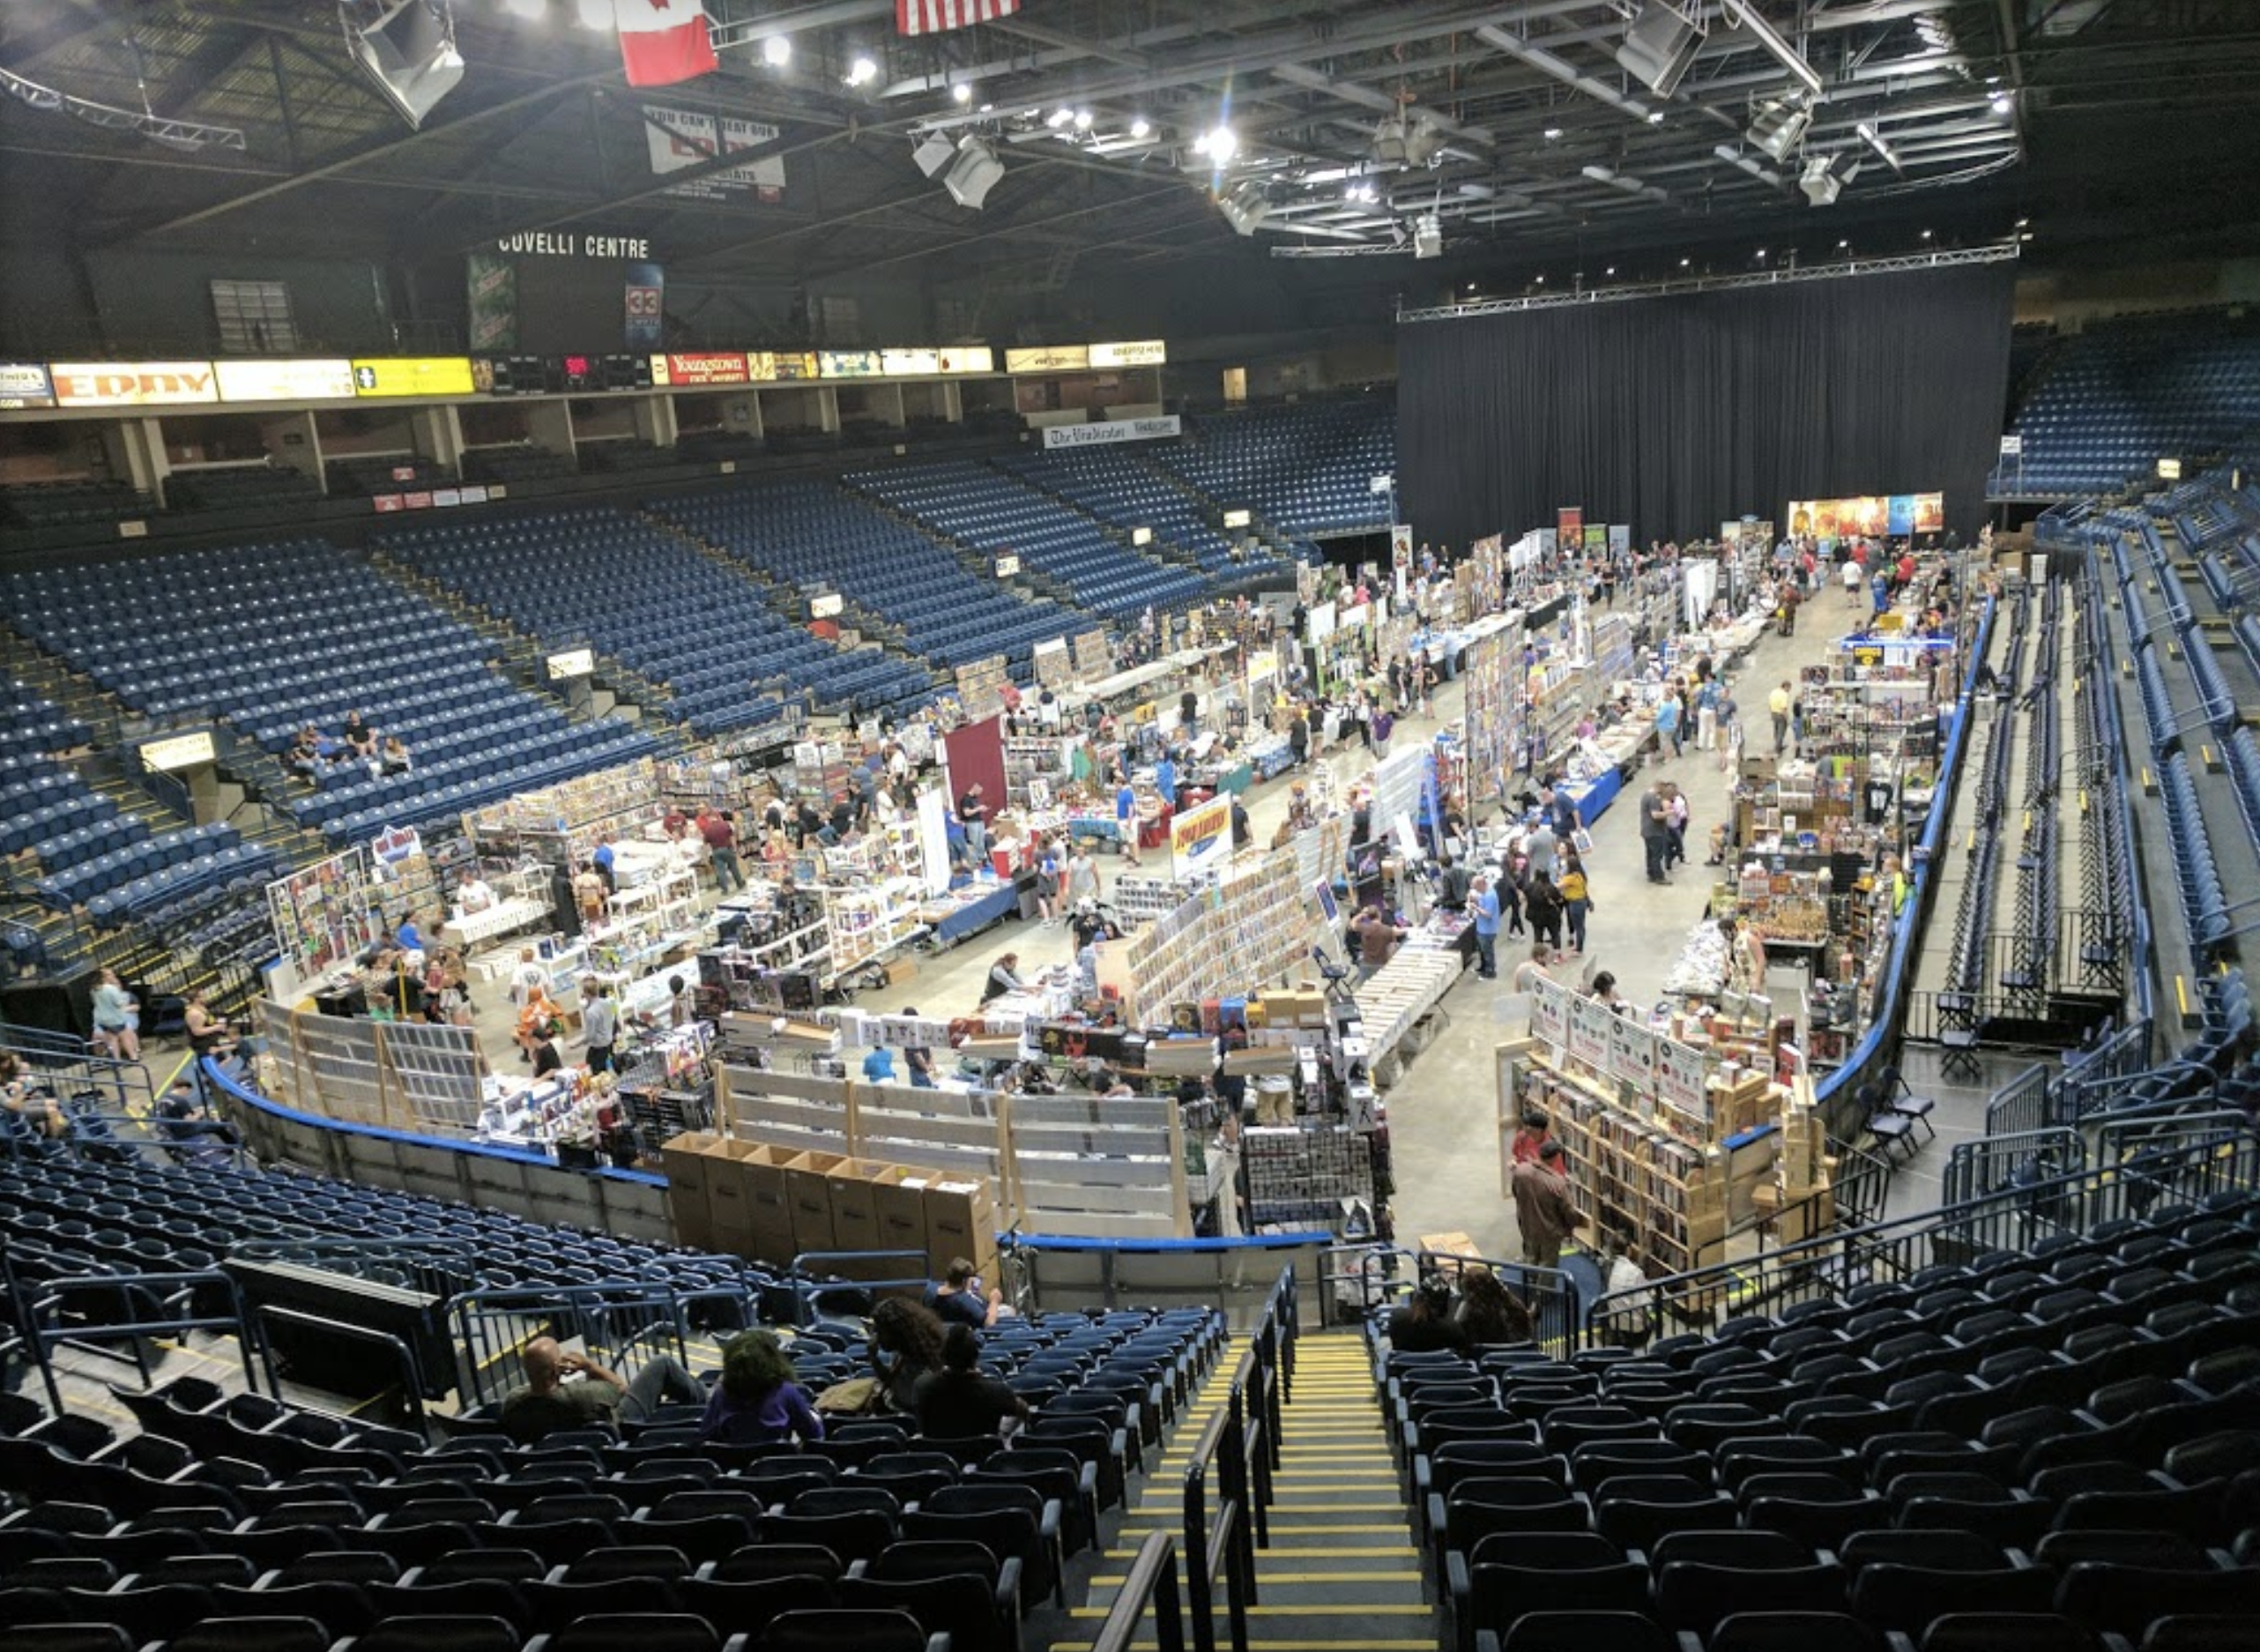 covelli centre youngstown live rh youngstownlive com